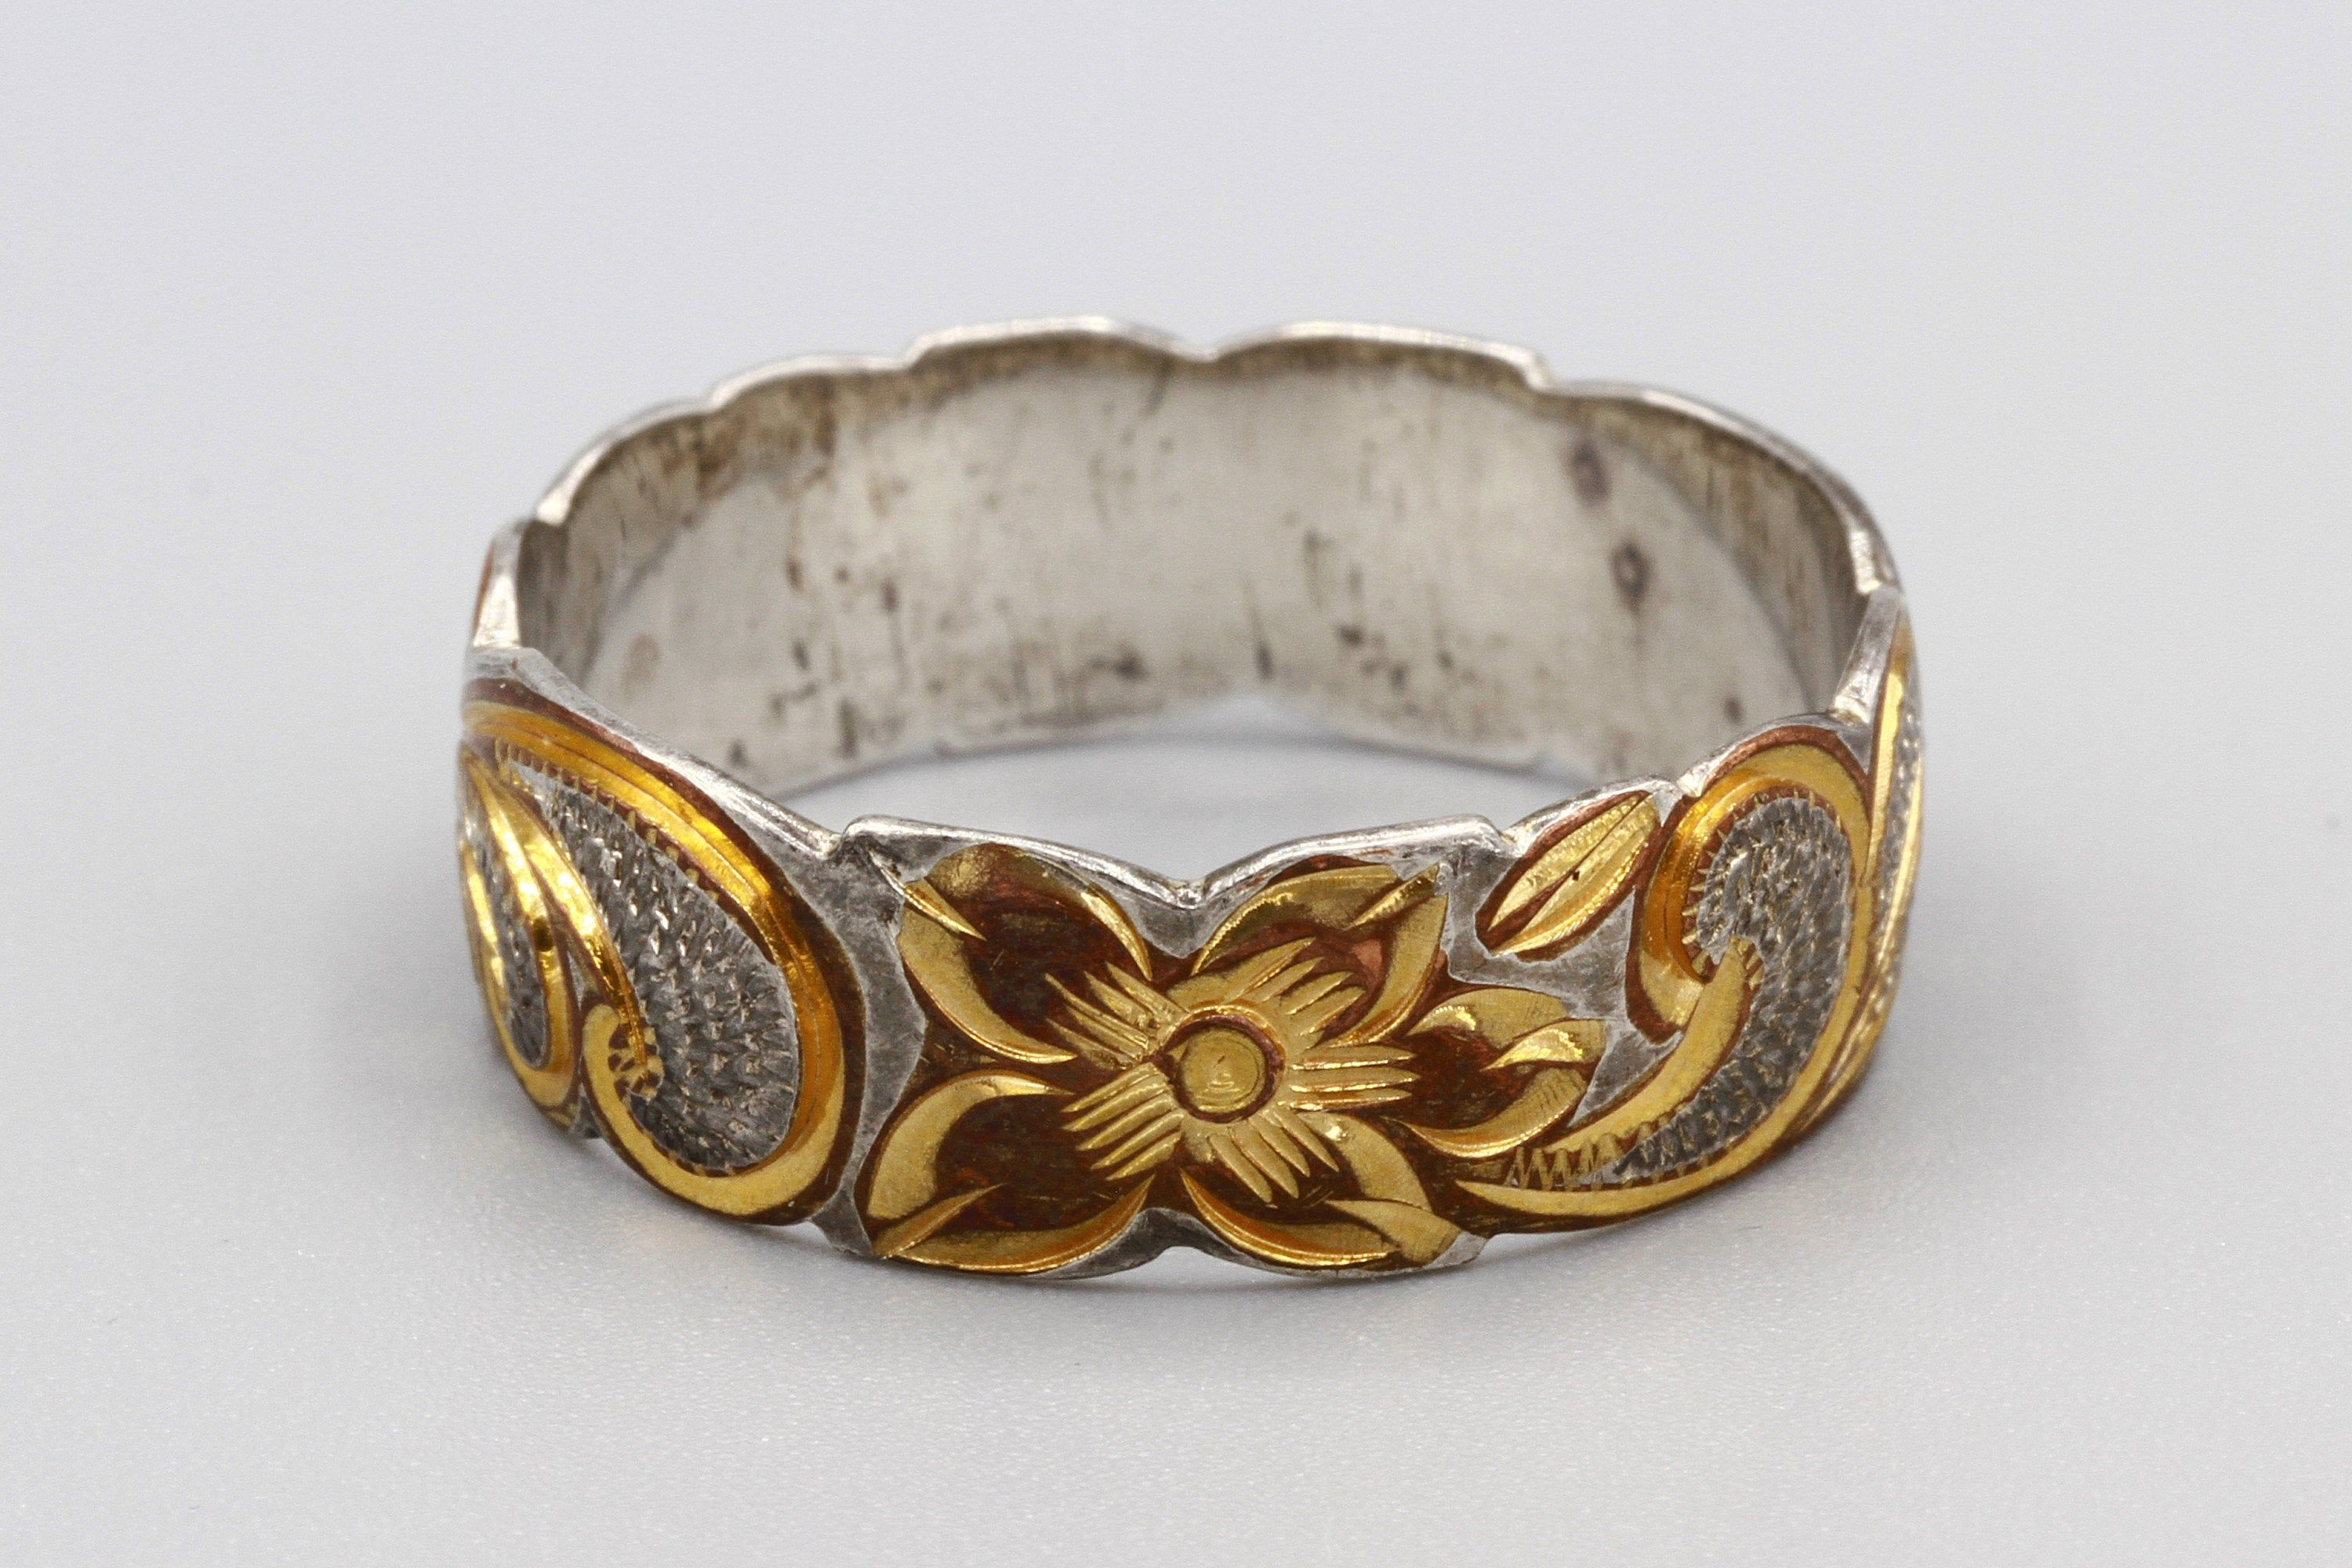 Mens Wedding Ring Hawaiian Flowers Ring Art Nouveau Look 925 Silver And Gold Ring Size 12 Etched Scroll Ring Sterling And 12K Gold